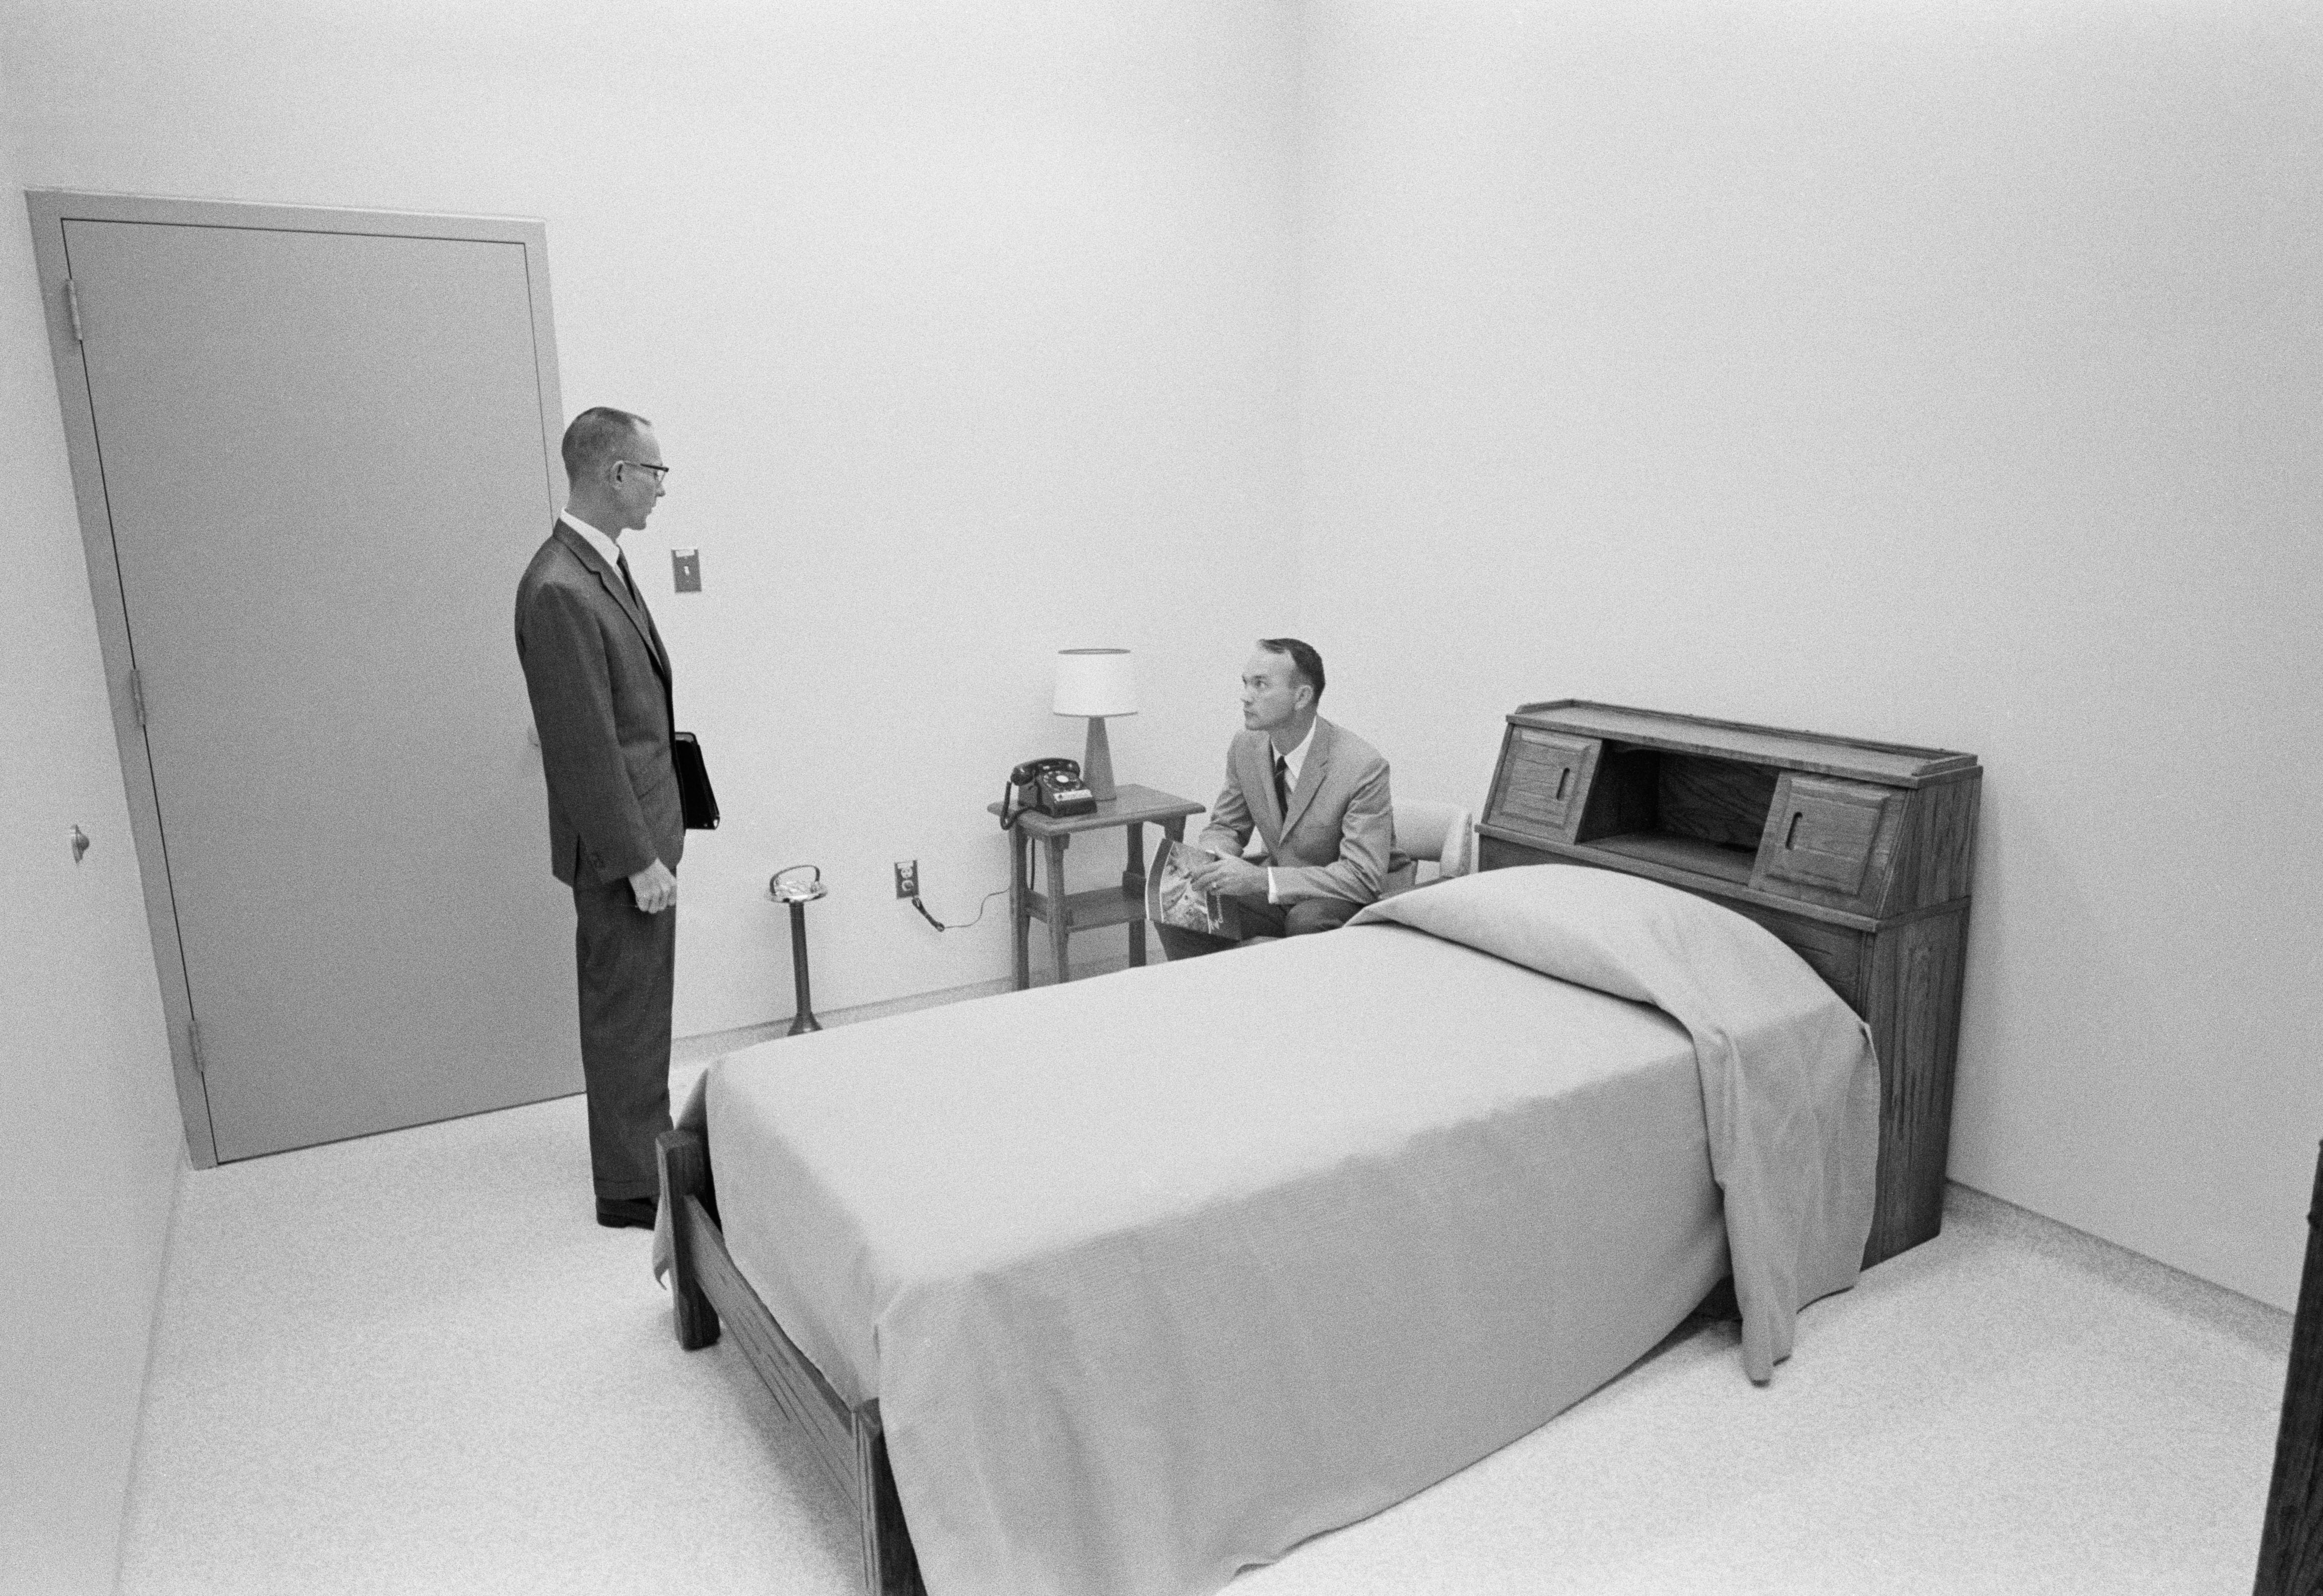 Black and white image of two men in sterile bedroom.